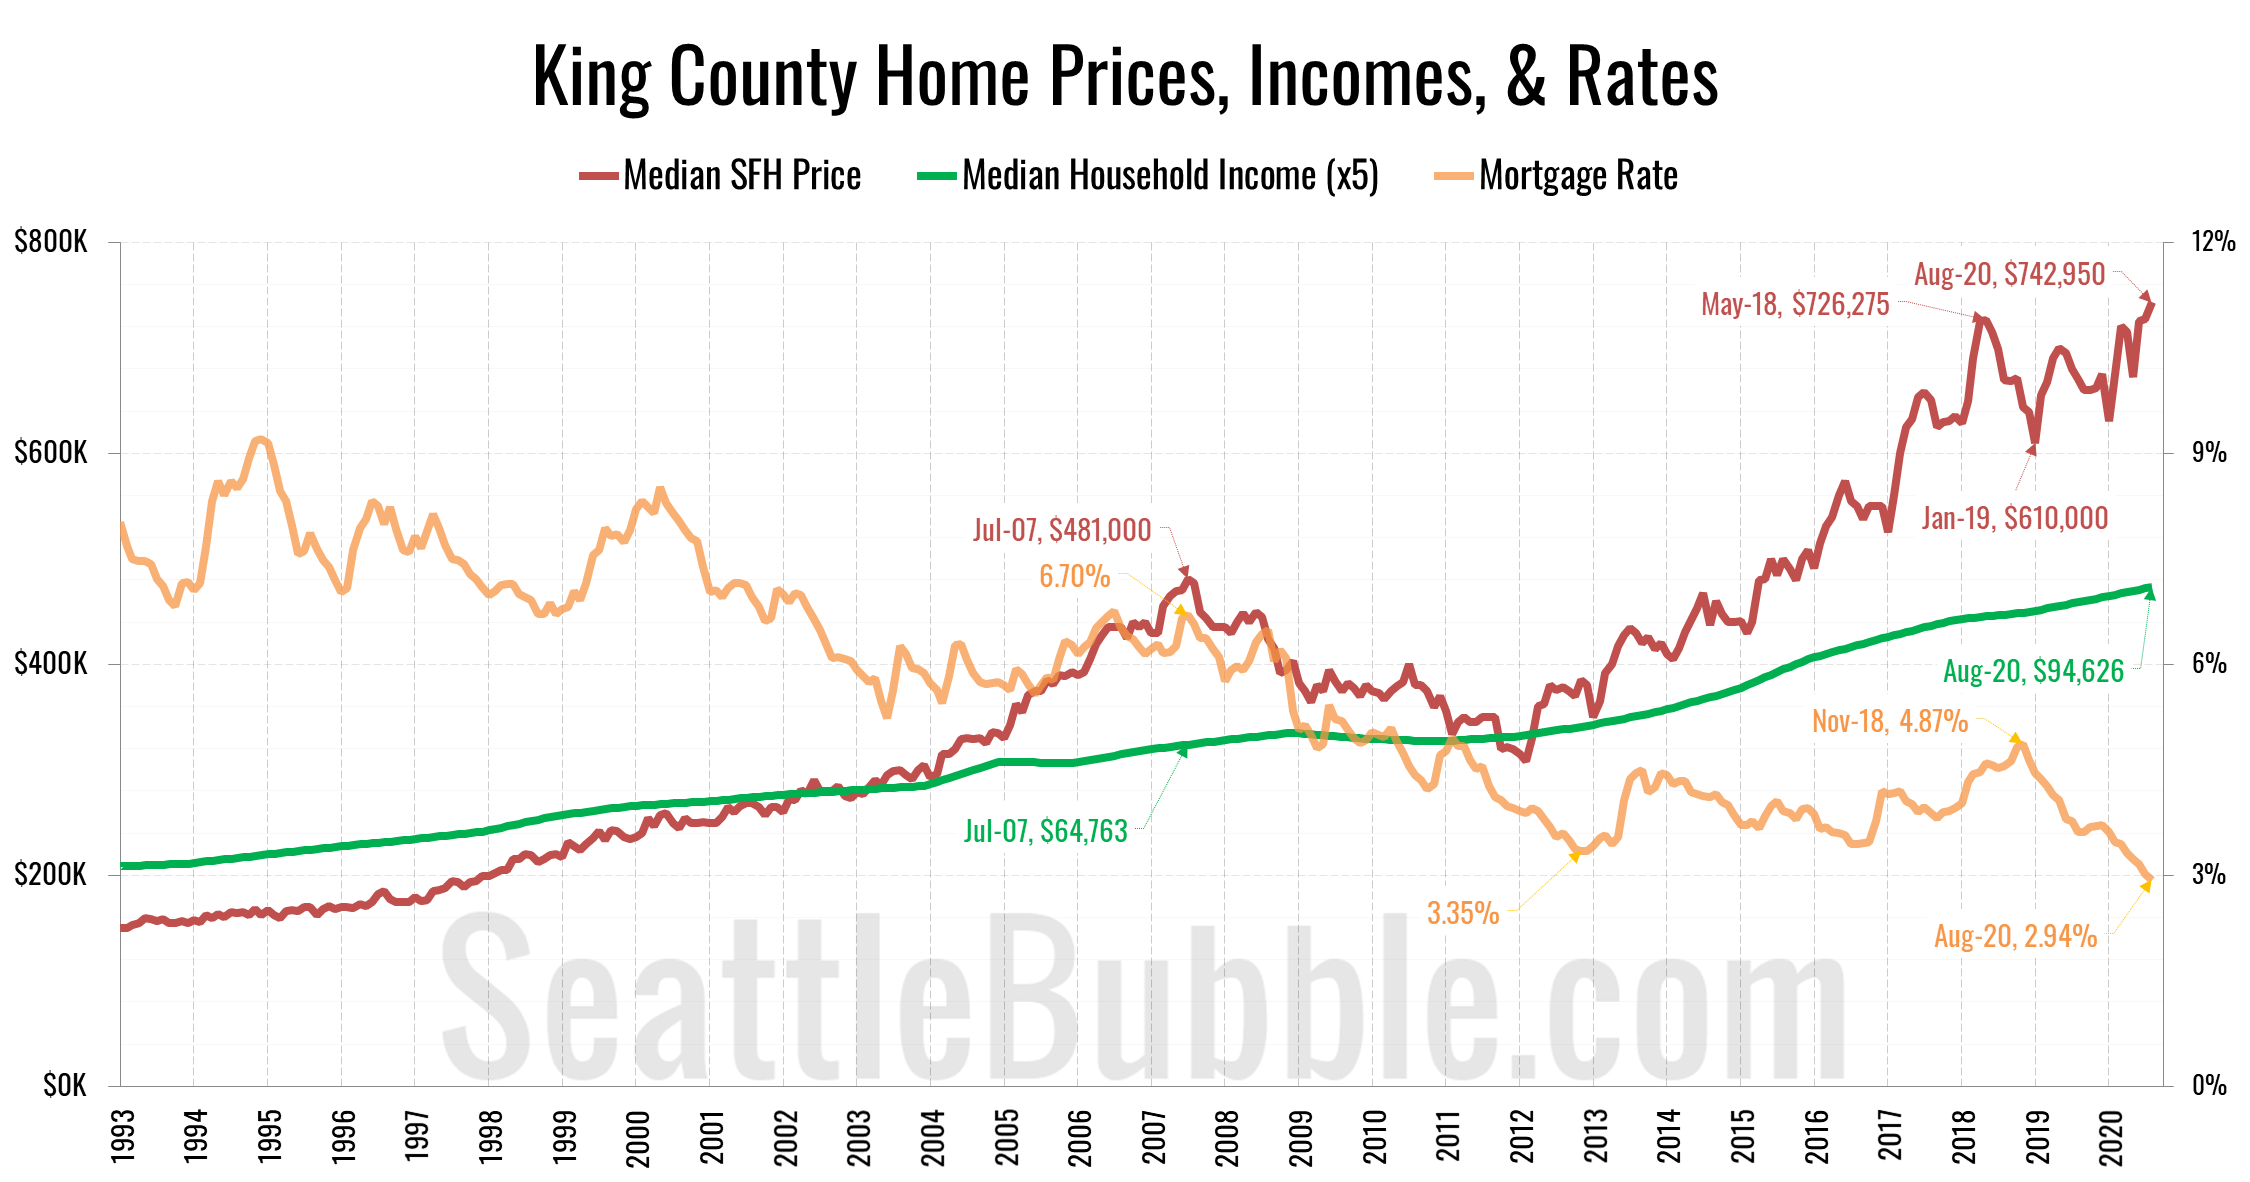 King County Affordability Index Components